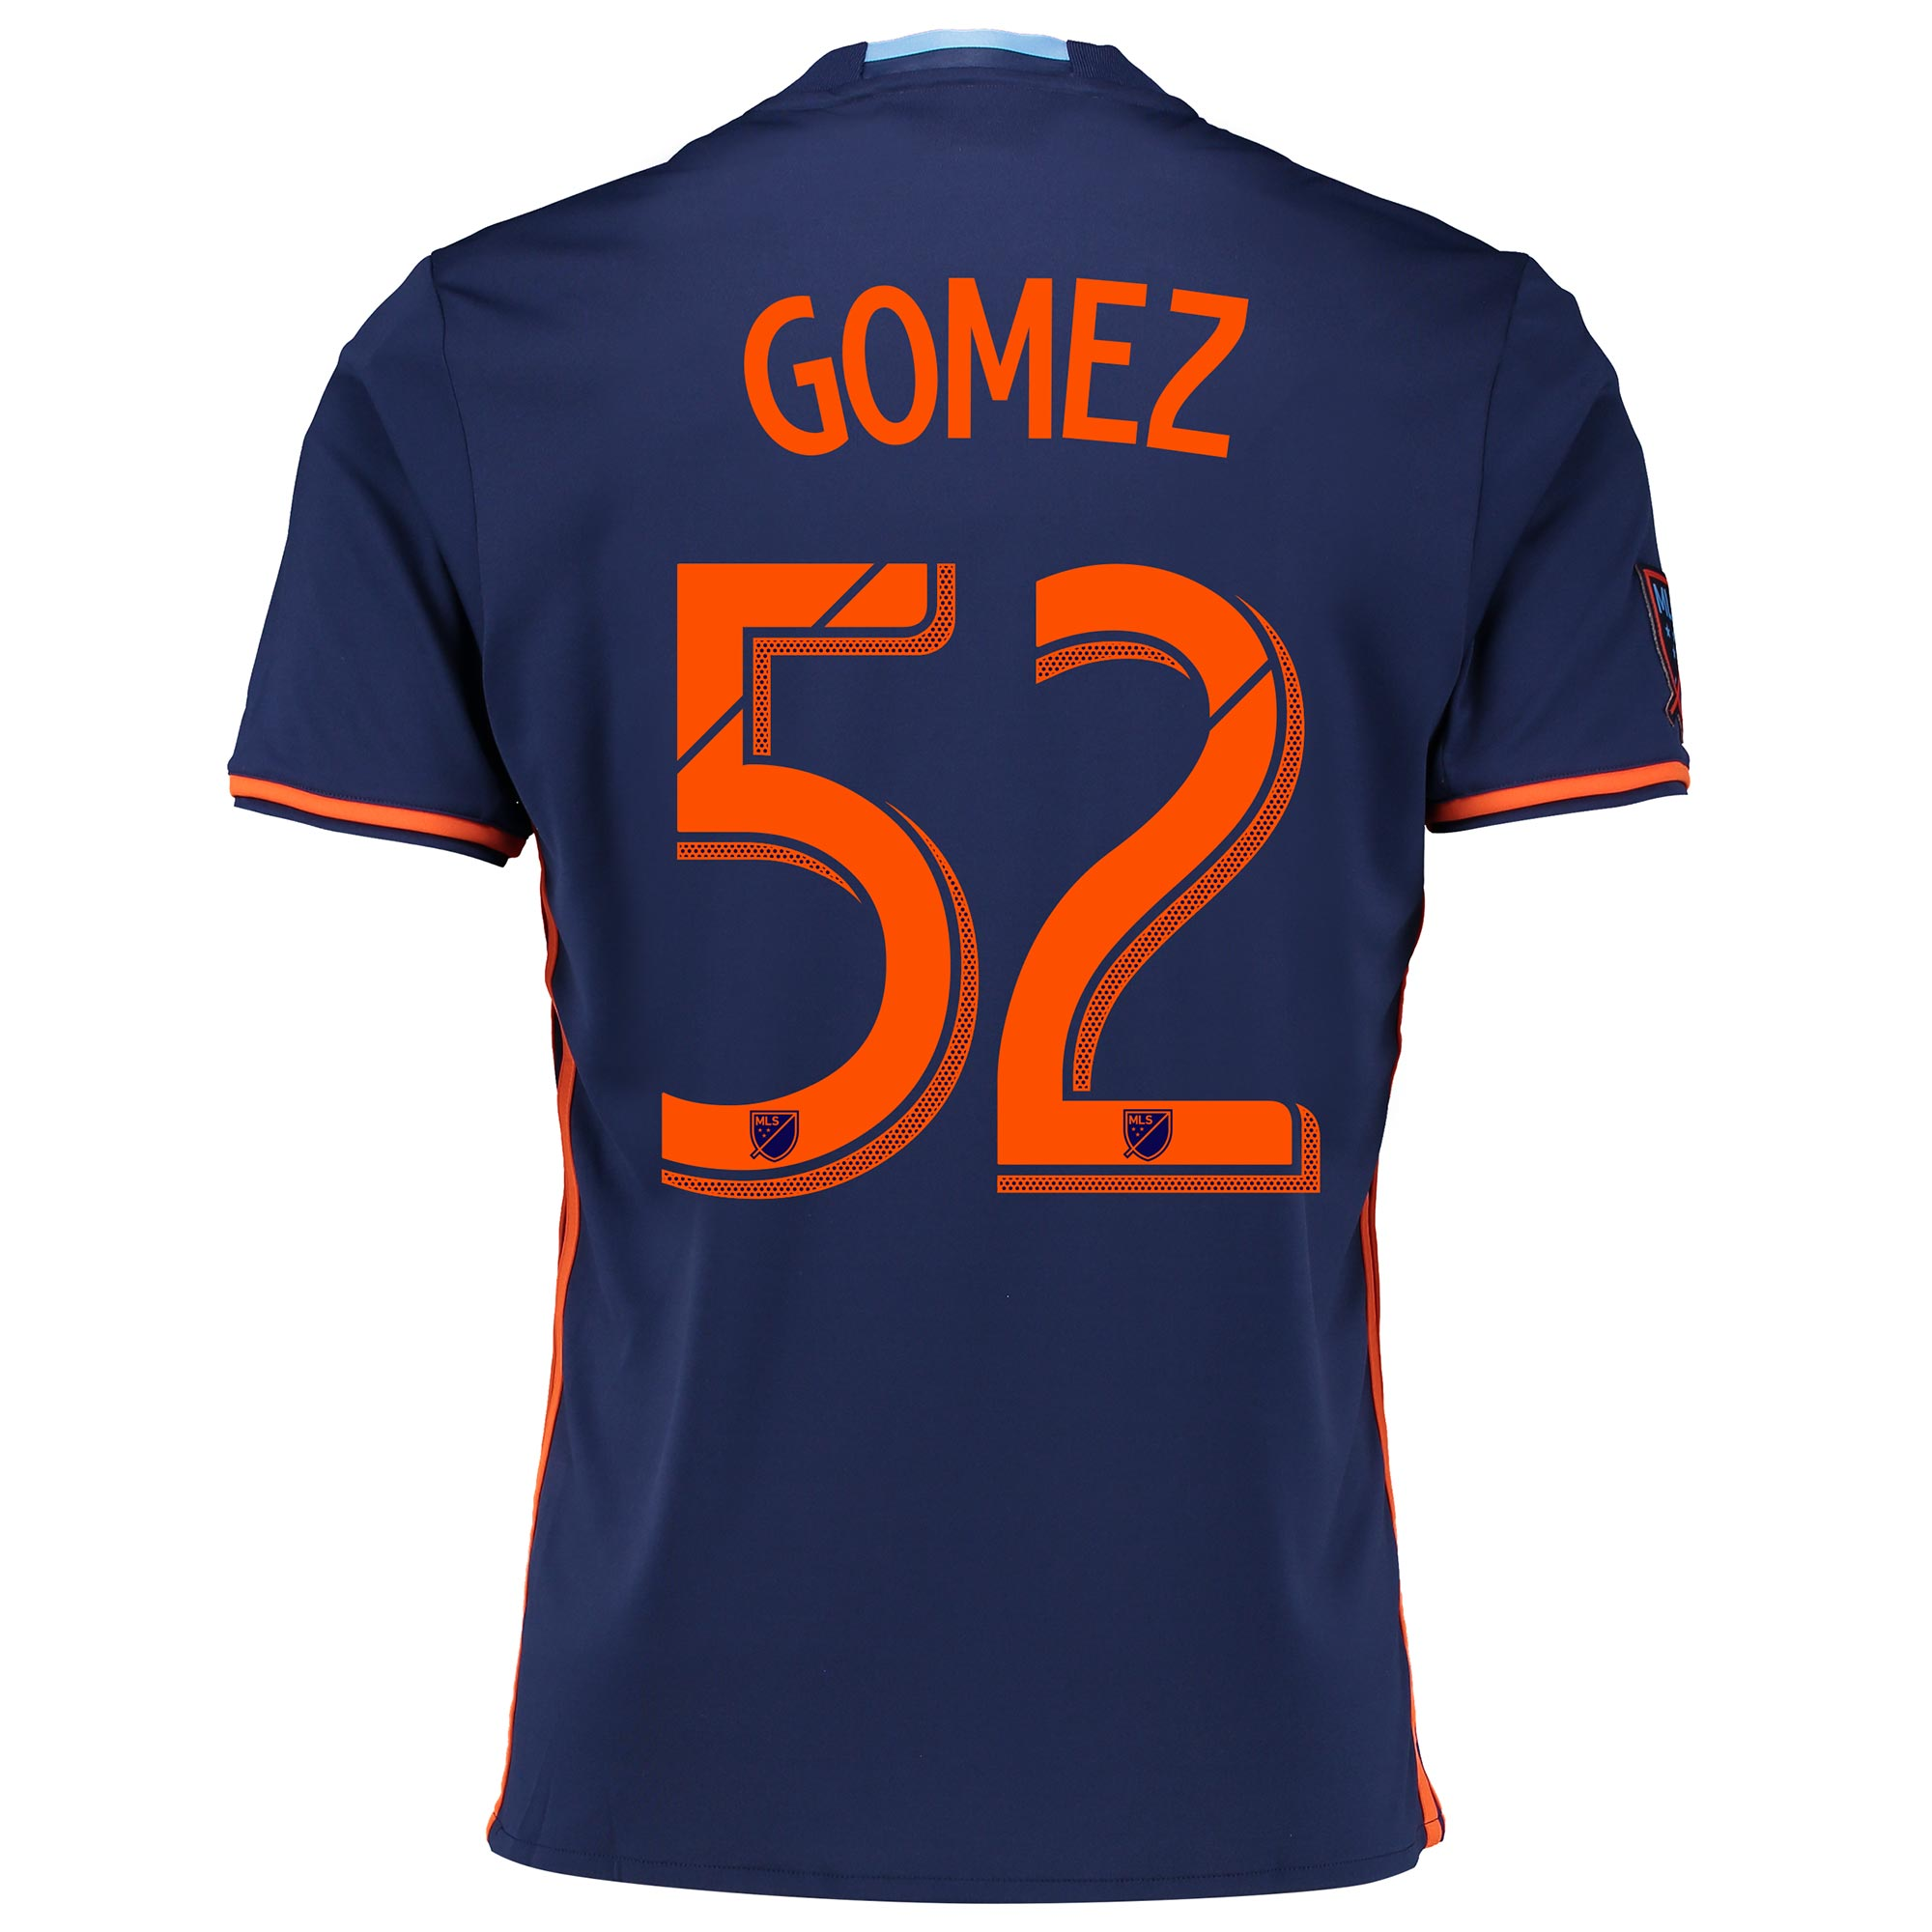 New York City FC Away Shirt 2016 with Gomez 52 printing